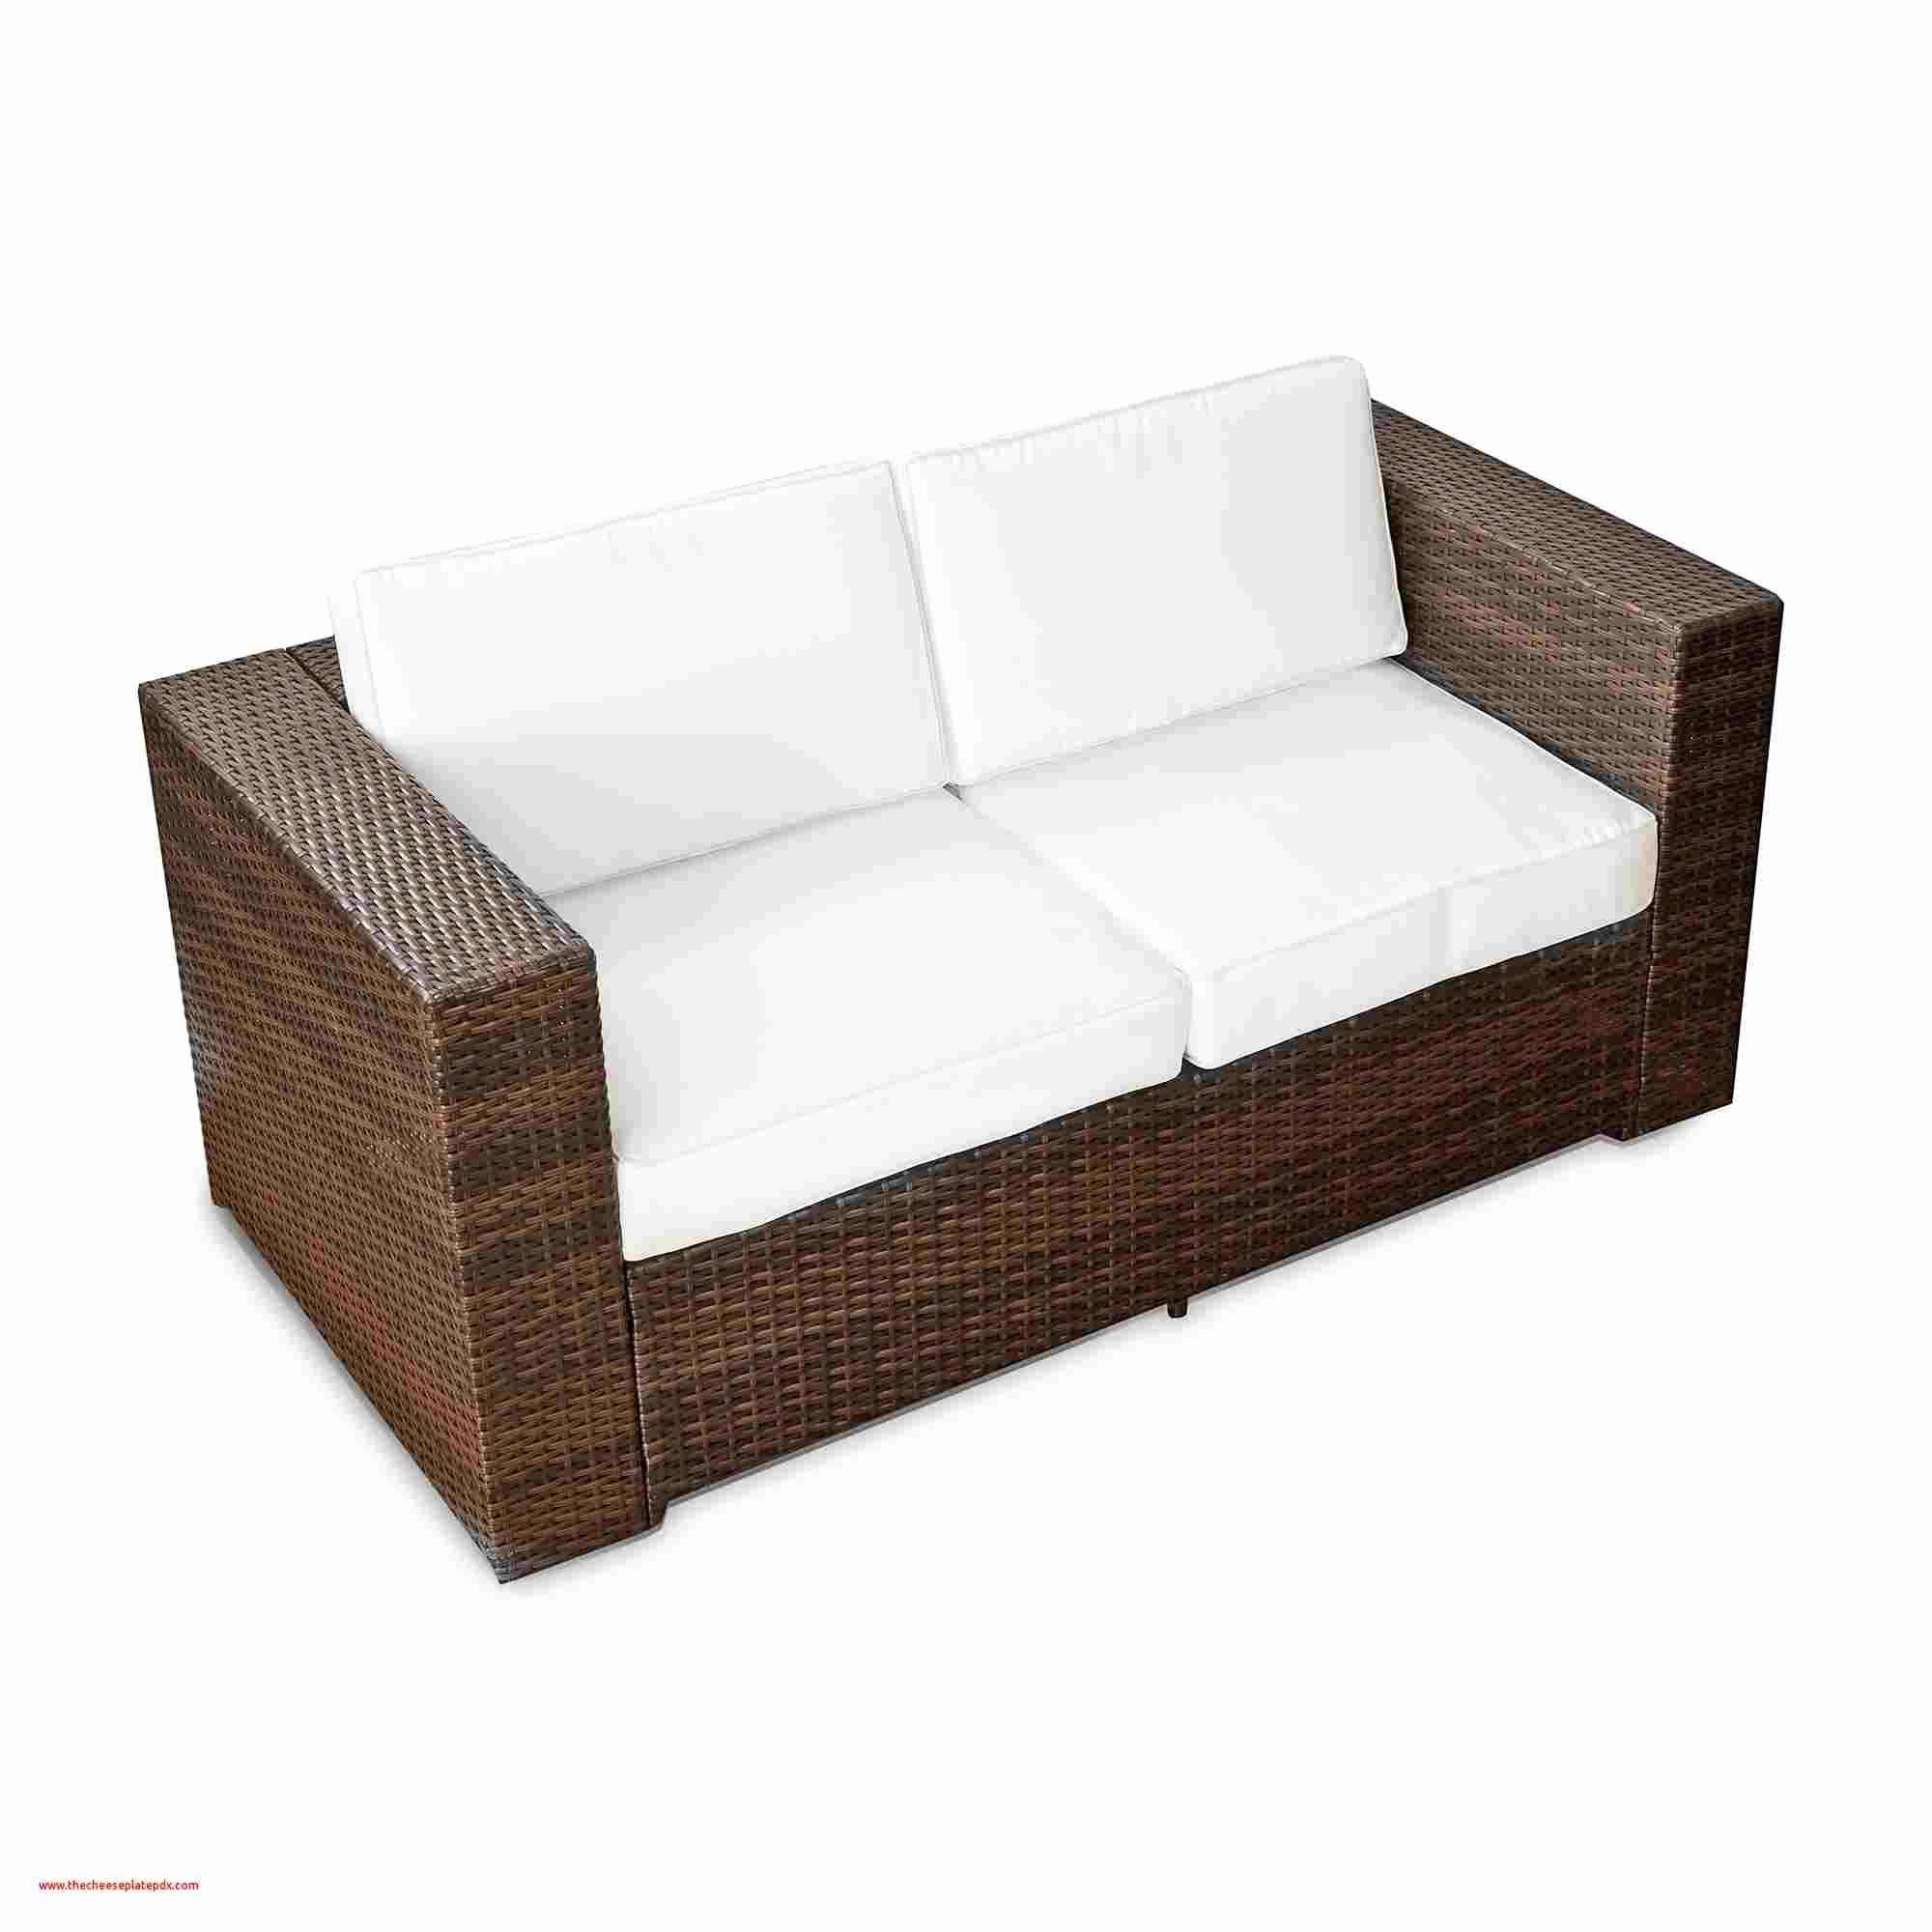 Wohnlandschaft L Form Gunstig Big Sofa Gunstig Sofa Loveseat Sleeper Sofa Outdoor Sofa